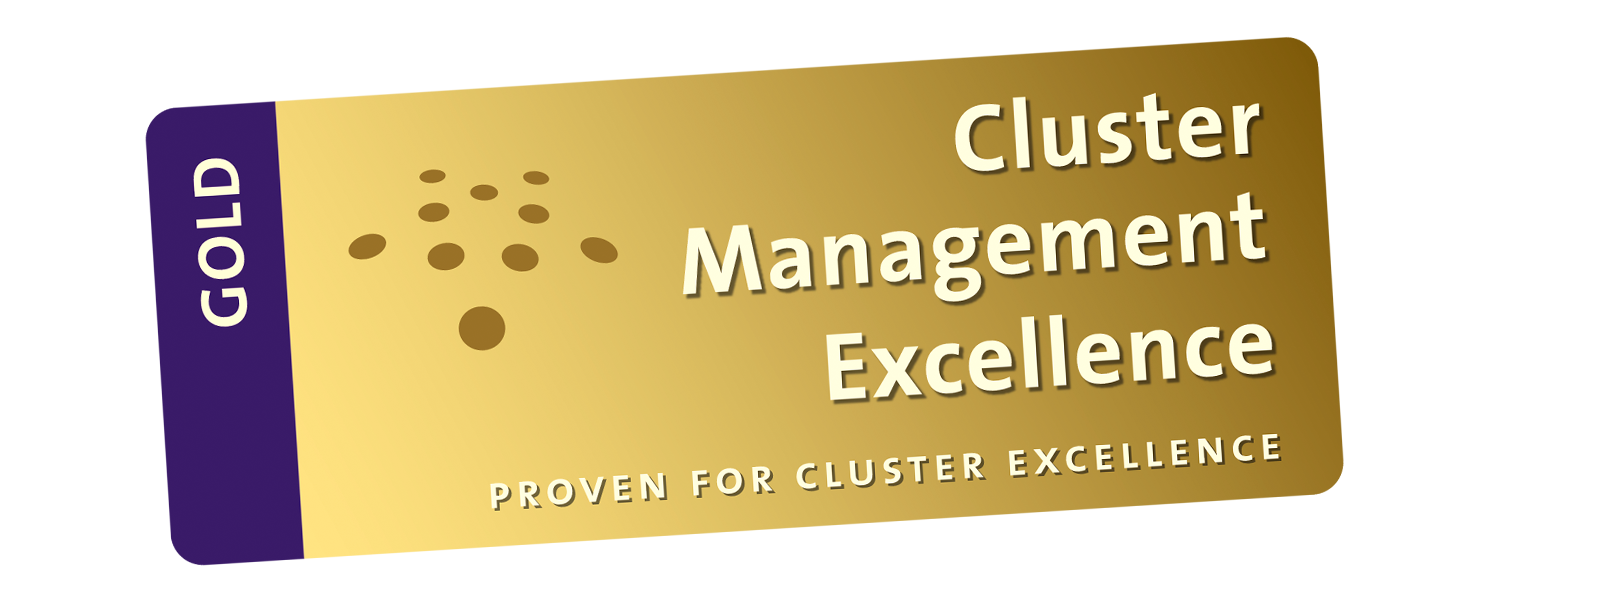 European Cluster Excellence Gold Label